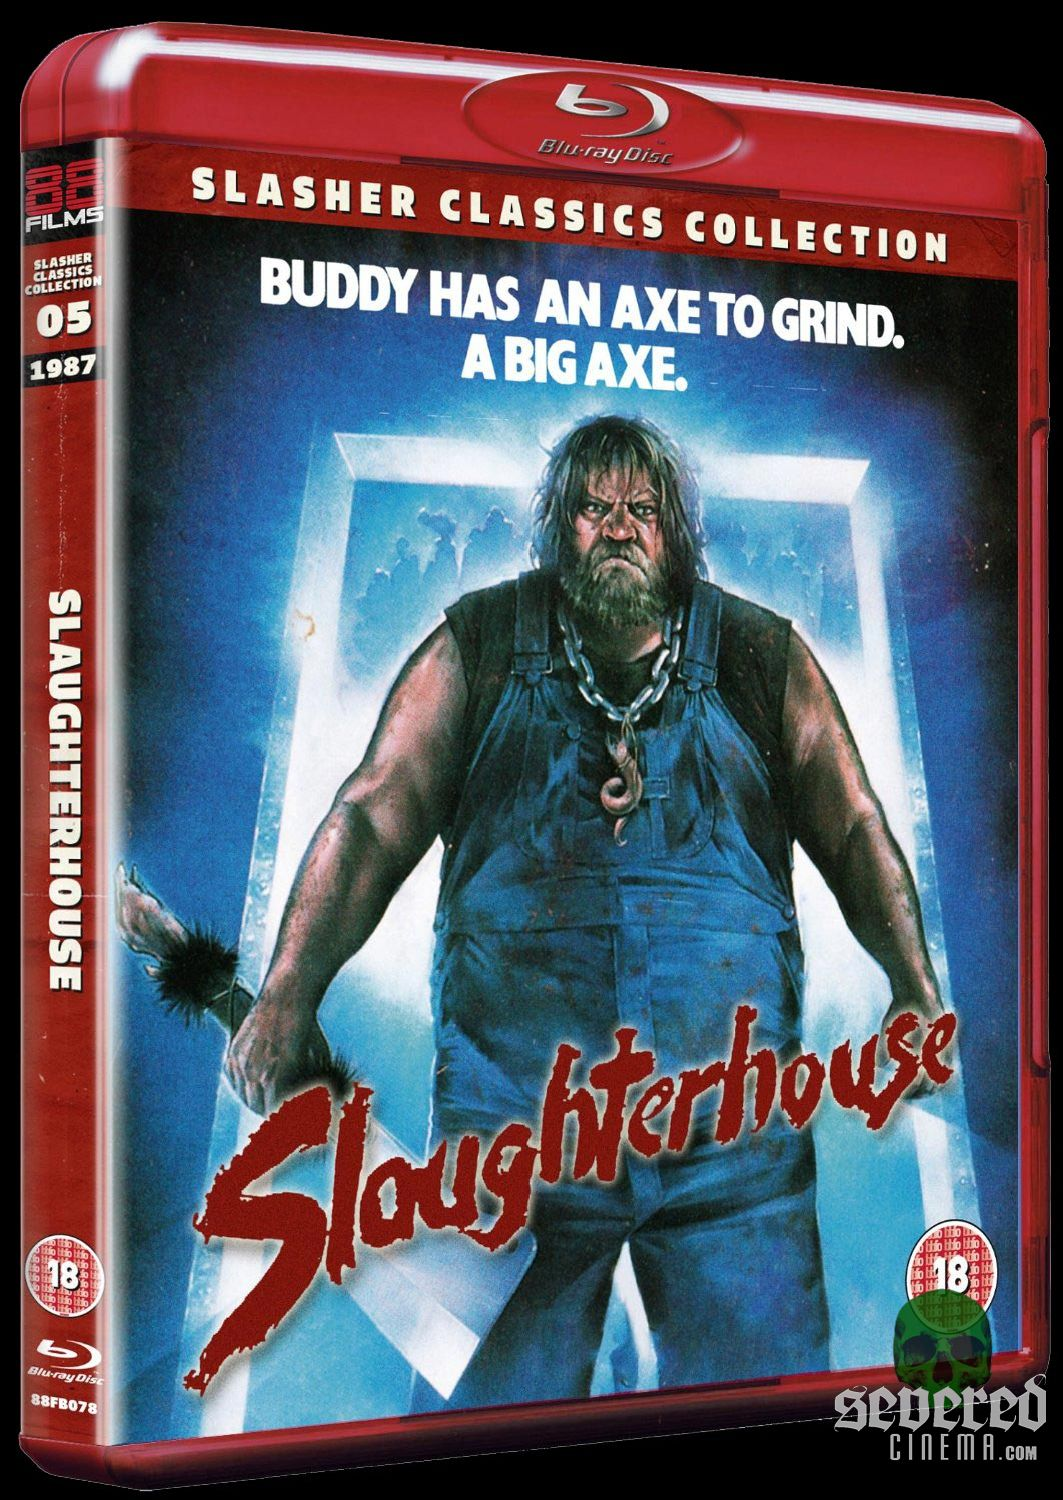 Slaughterhouse on Blu-ray from 88 Films on Severed Cinema